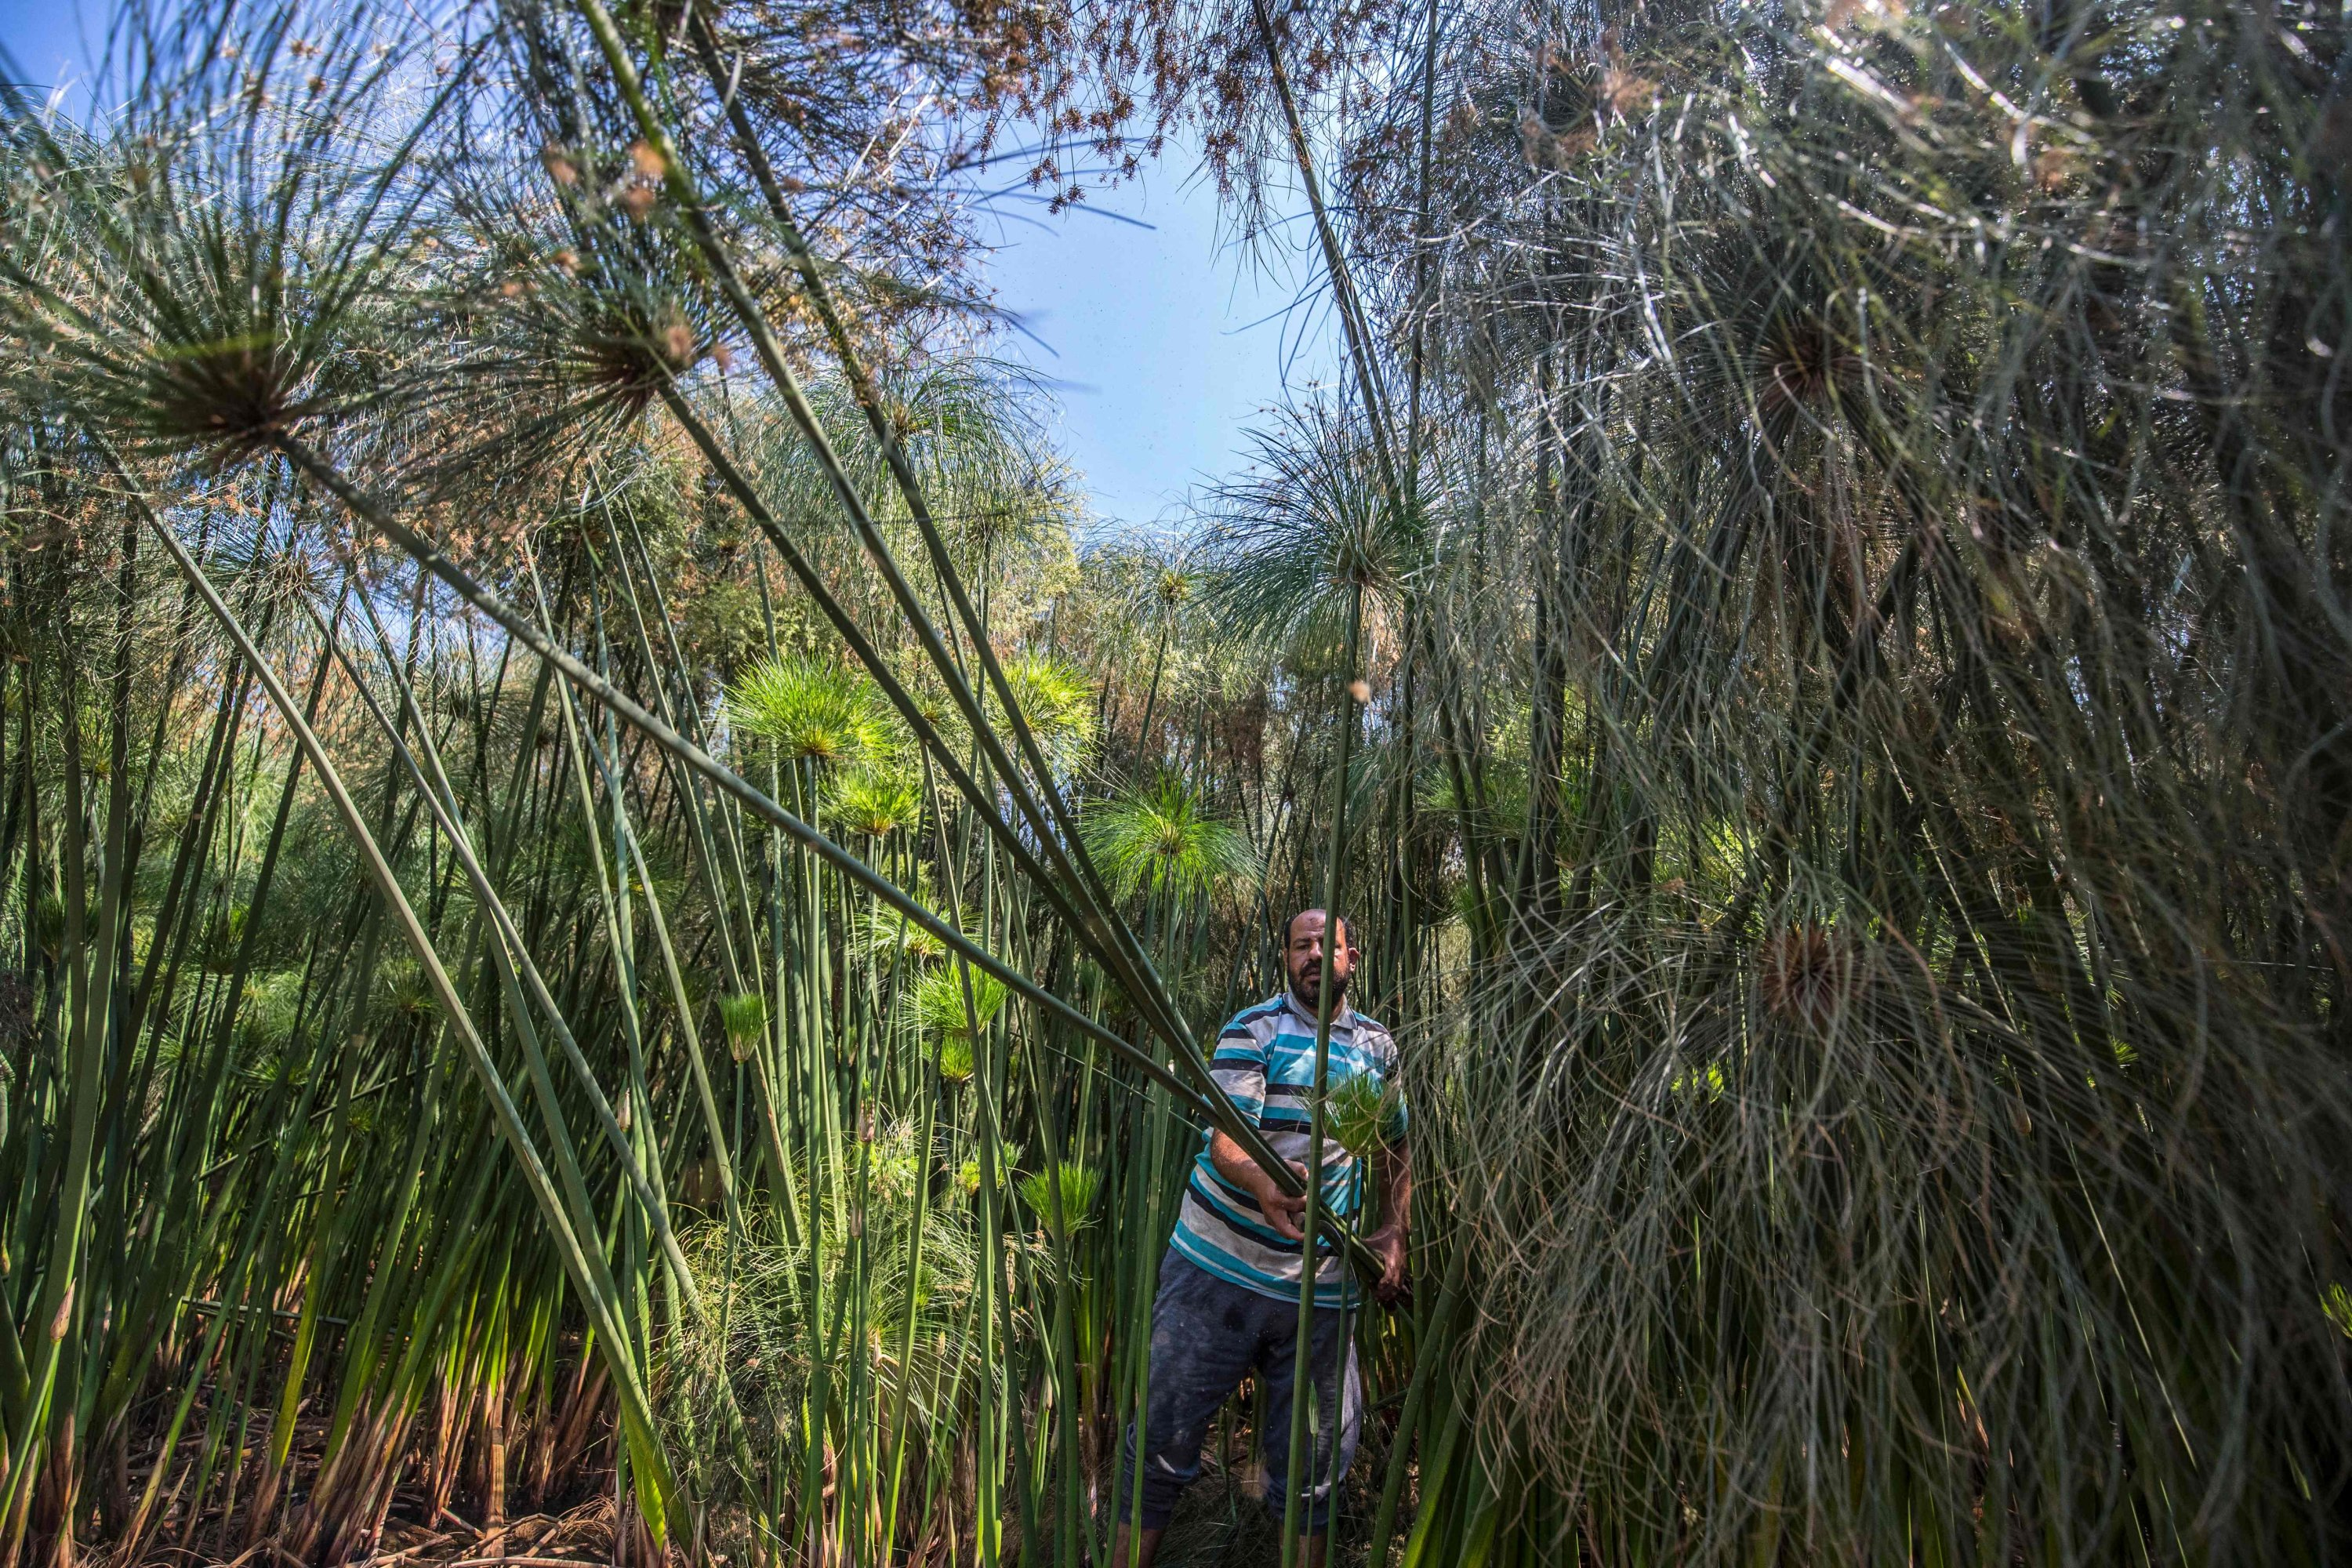 Abdel Mobdi Moussalam, 48, cuts papyrus reeds from his land in the village of al-Qaramous in Sharqiyah province, in Egypt